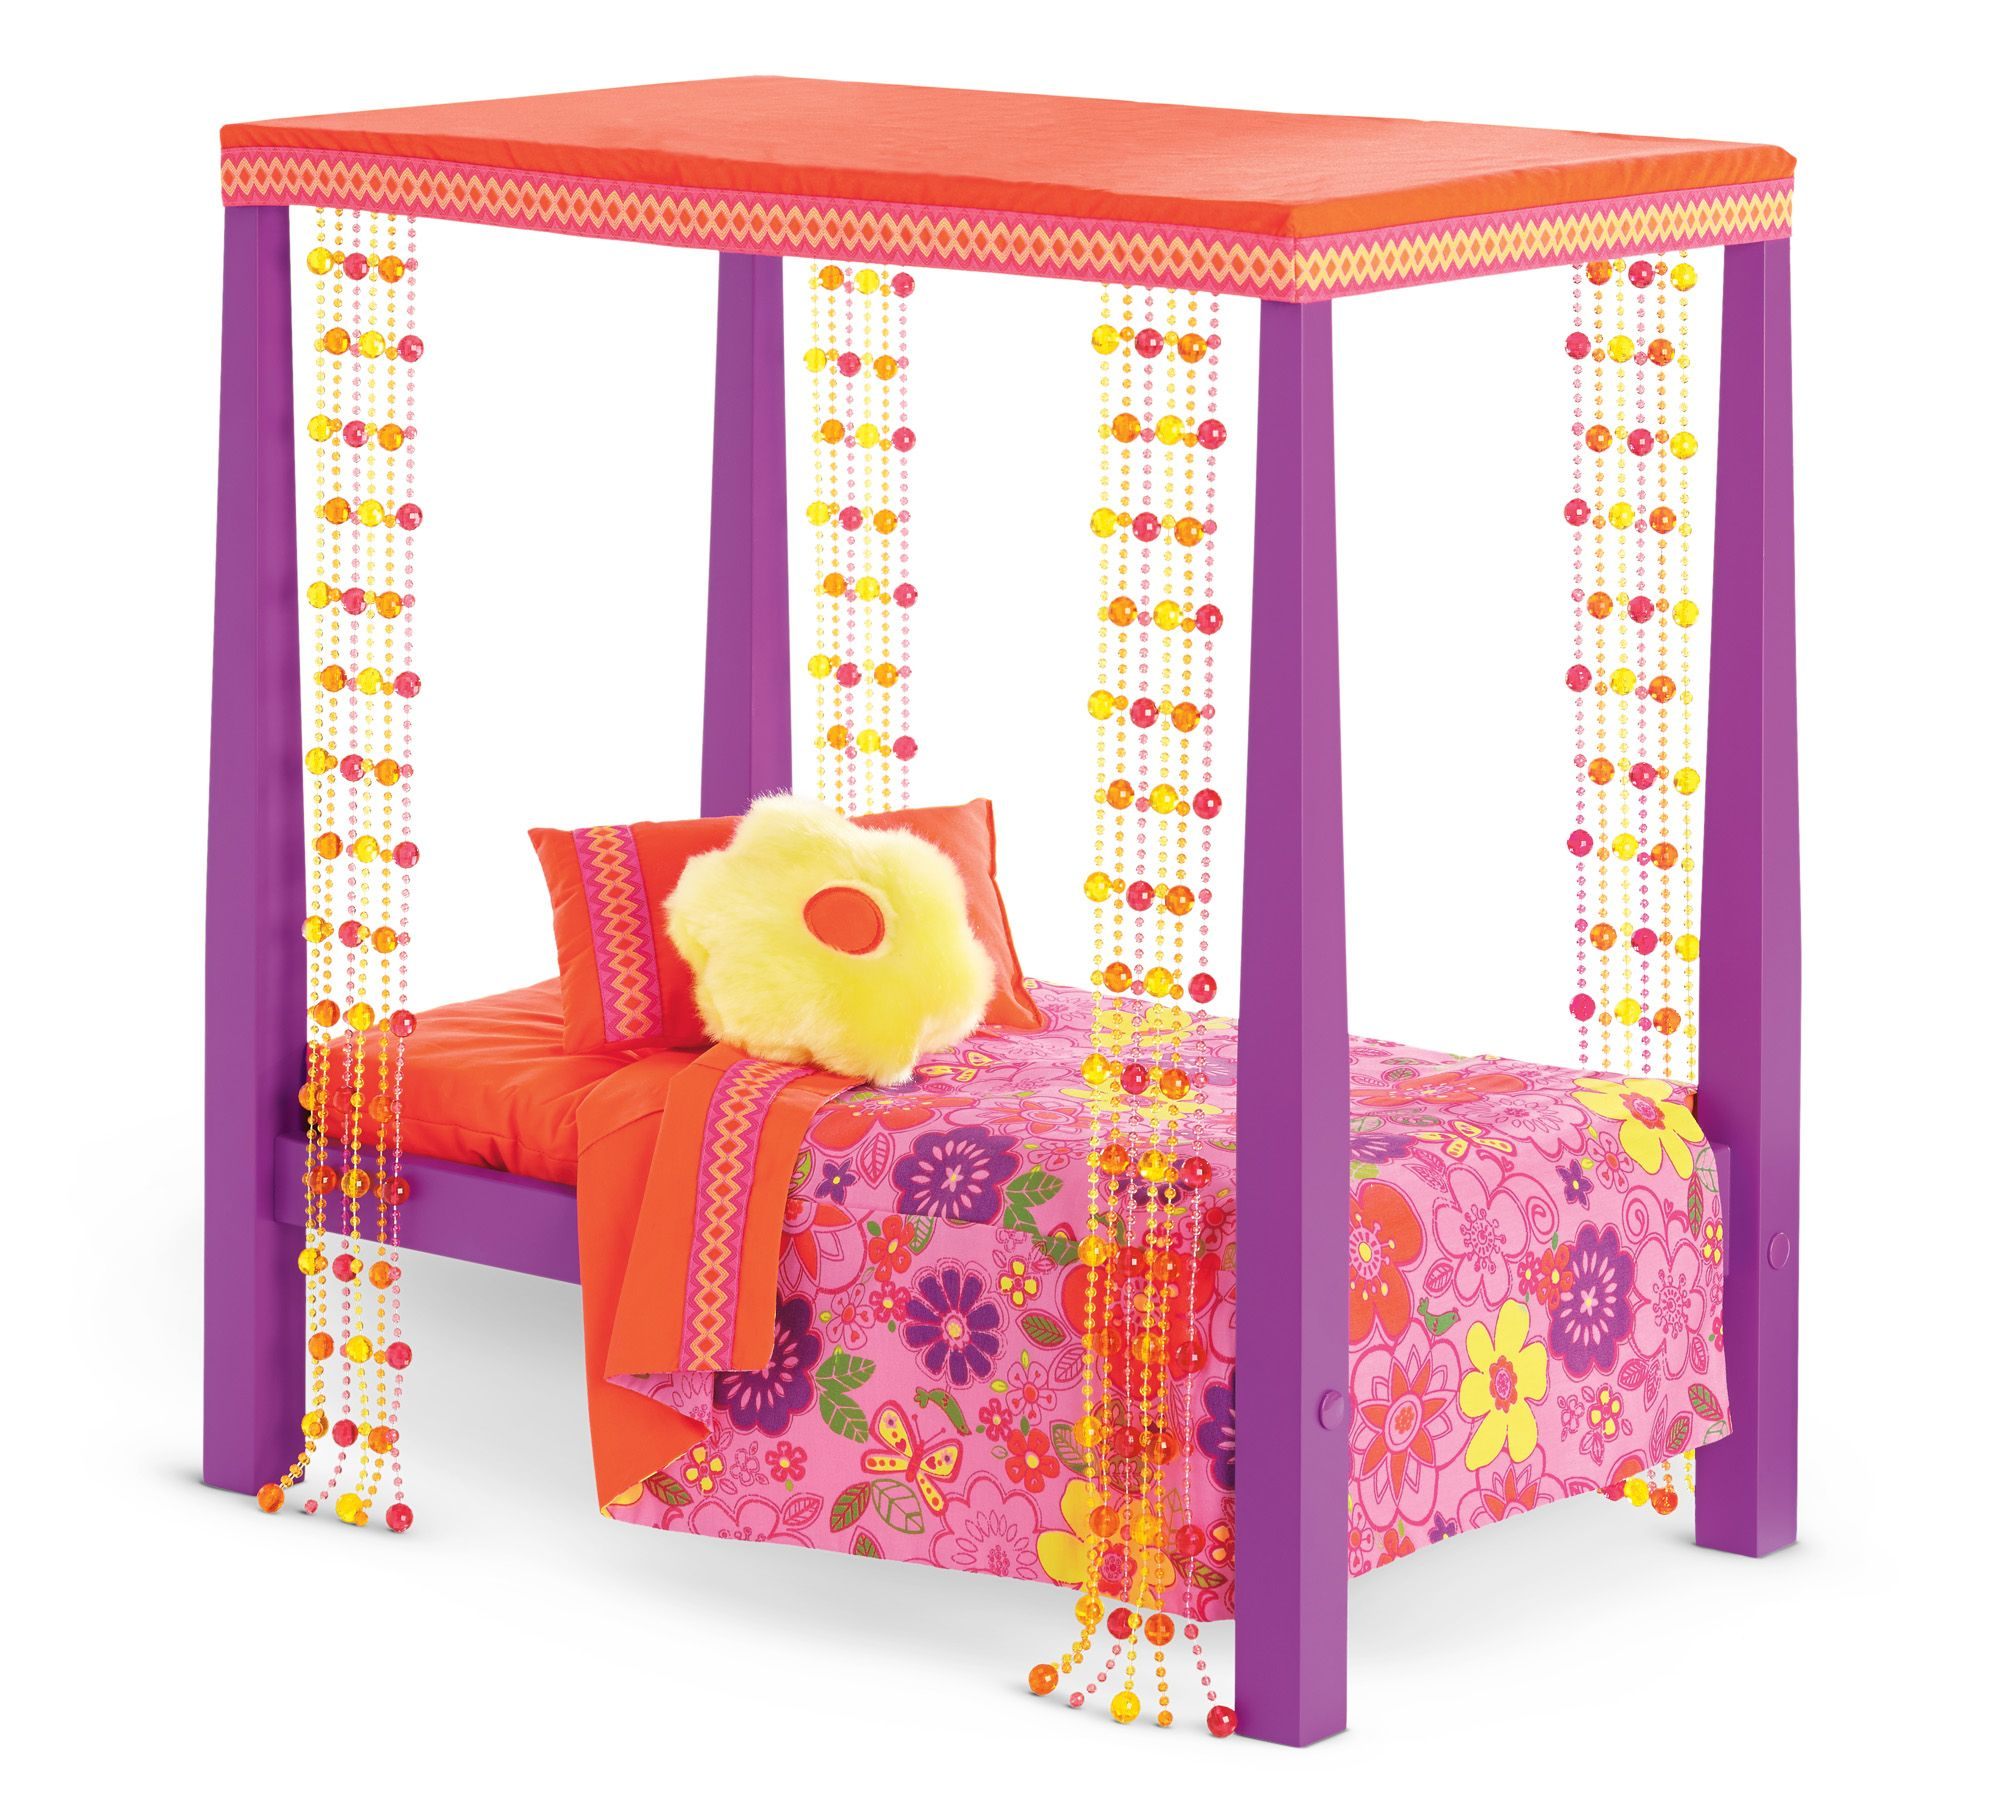 Julie's Bed & Bedding American girl doll bed, American